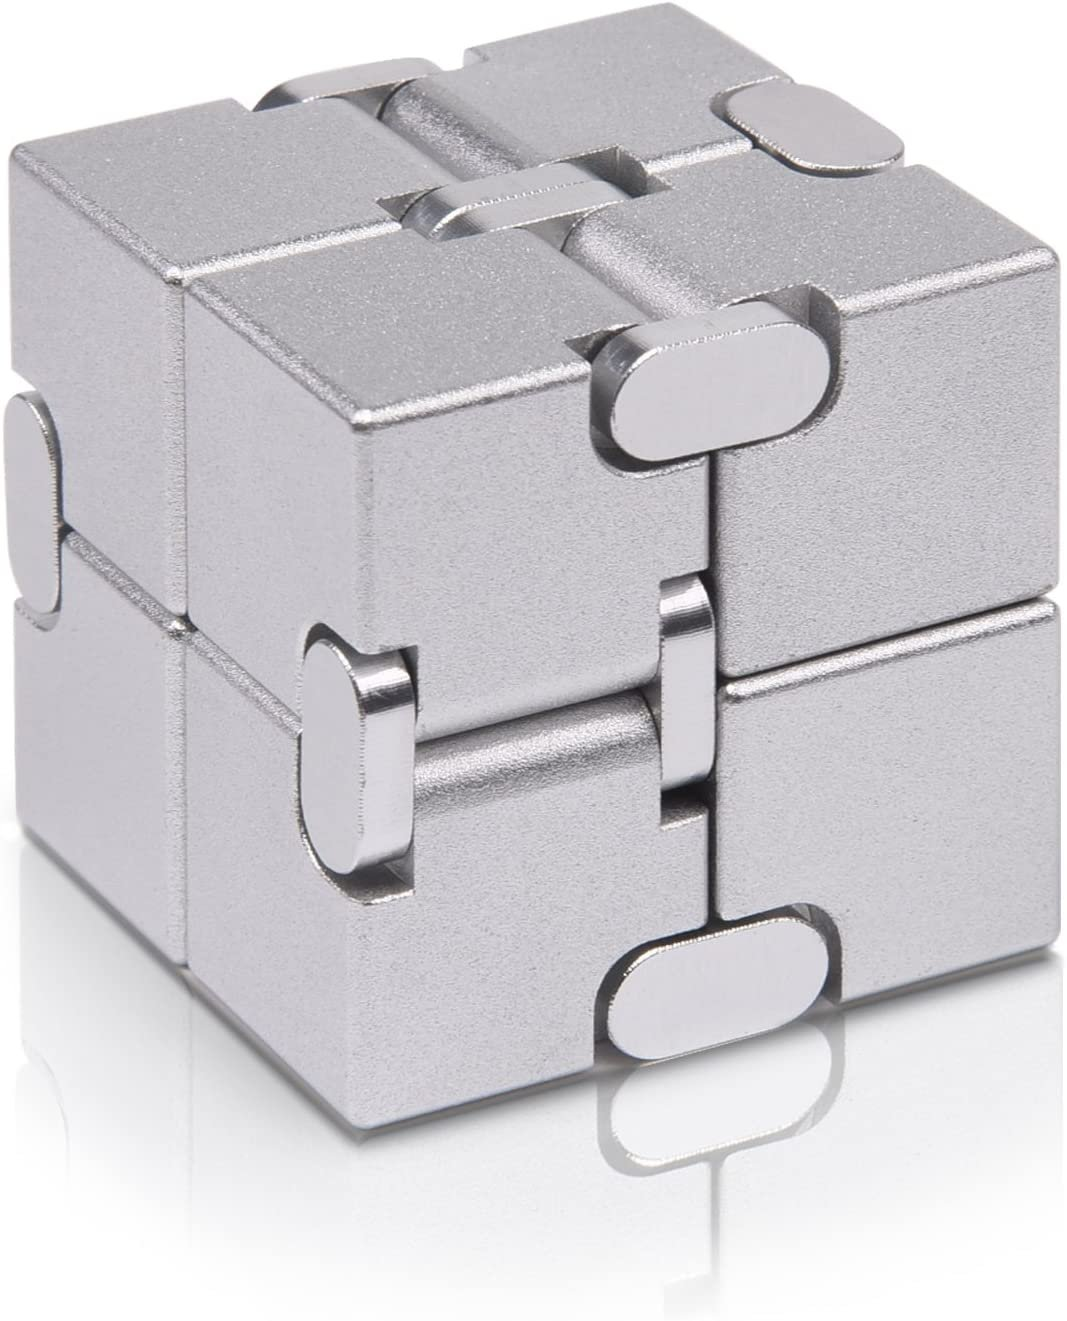 Metal Infinity Cube Assorted Colors